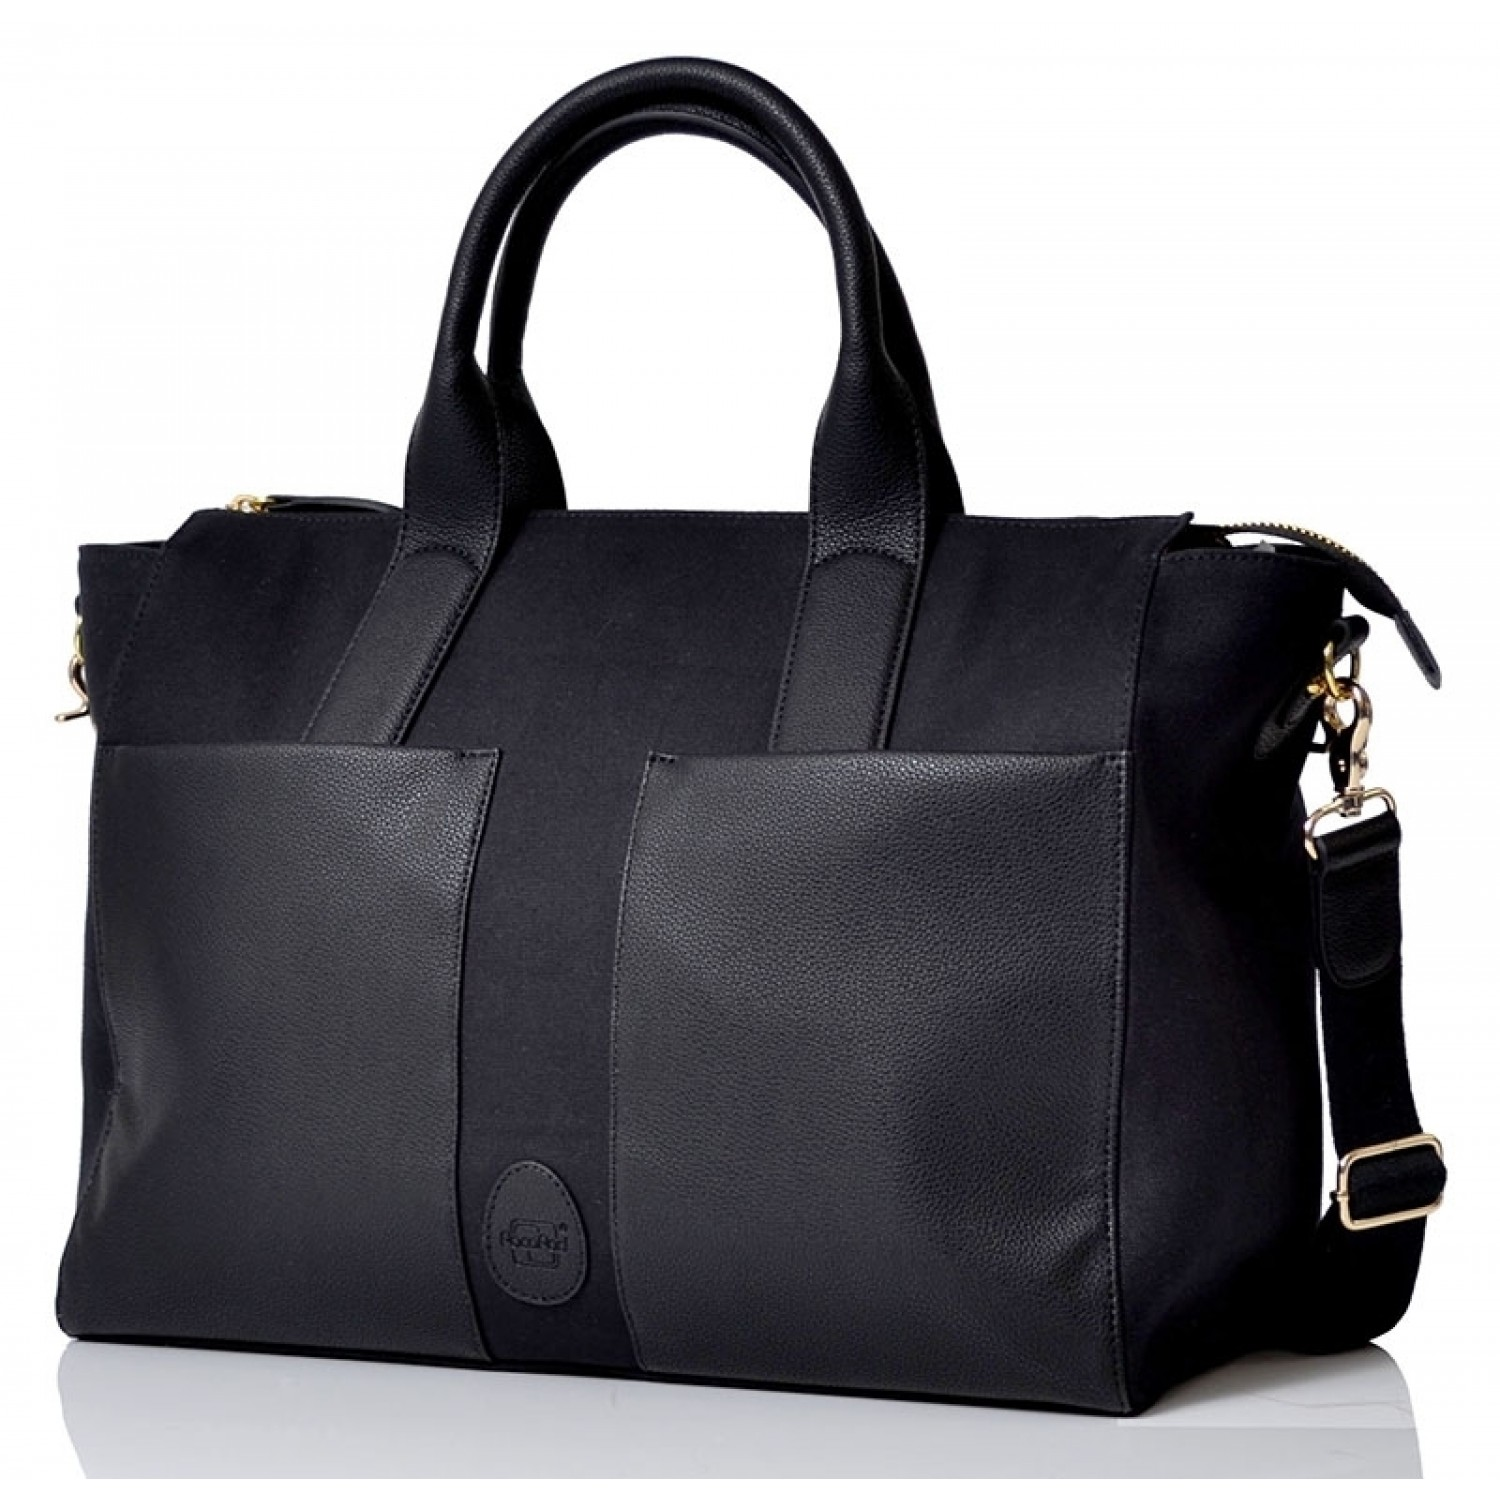 PacaPod Croyde black Eco Changing Bag & stylish Handbag